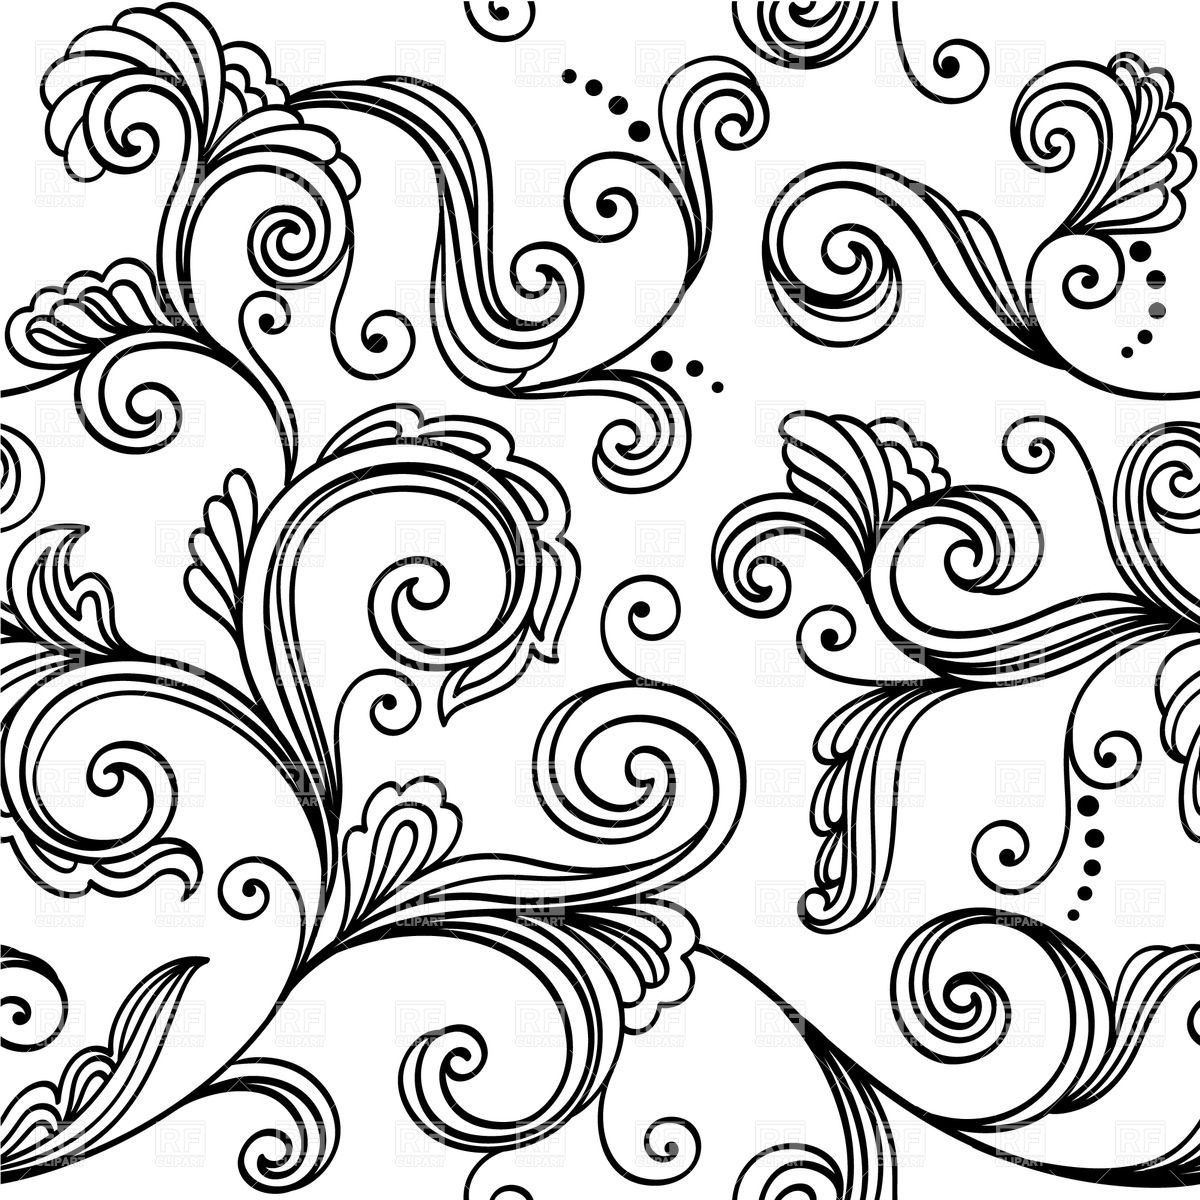 Seamless Black And White Floral Wallpaper Royalty Free.